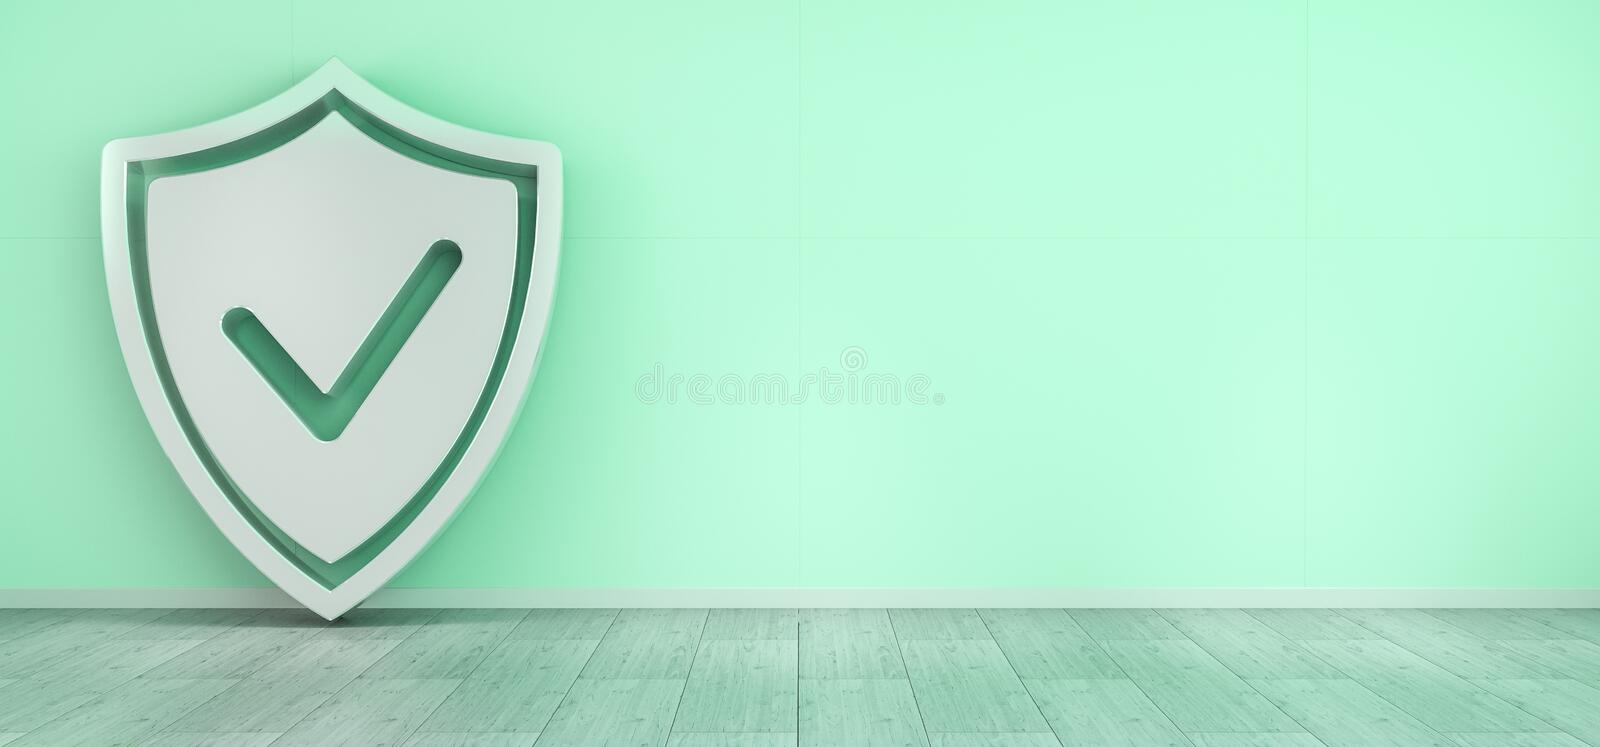 Smarthome shield security interface 3D rendering royalty free illustration